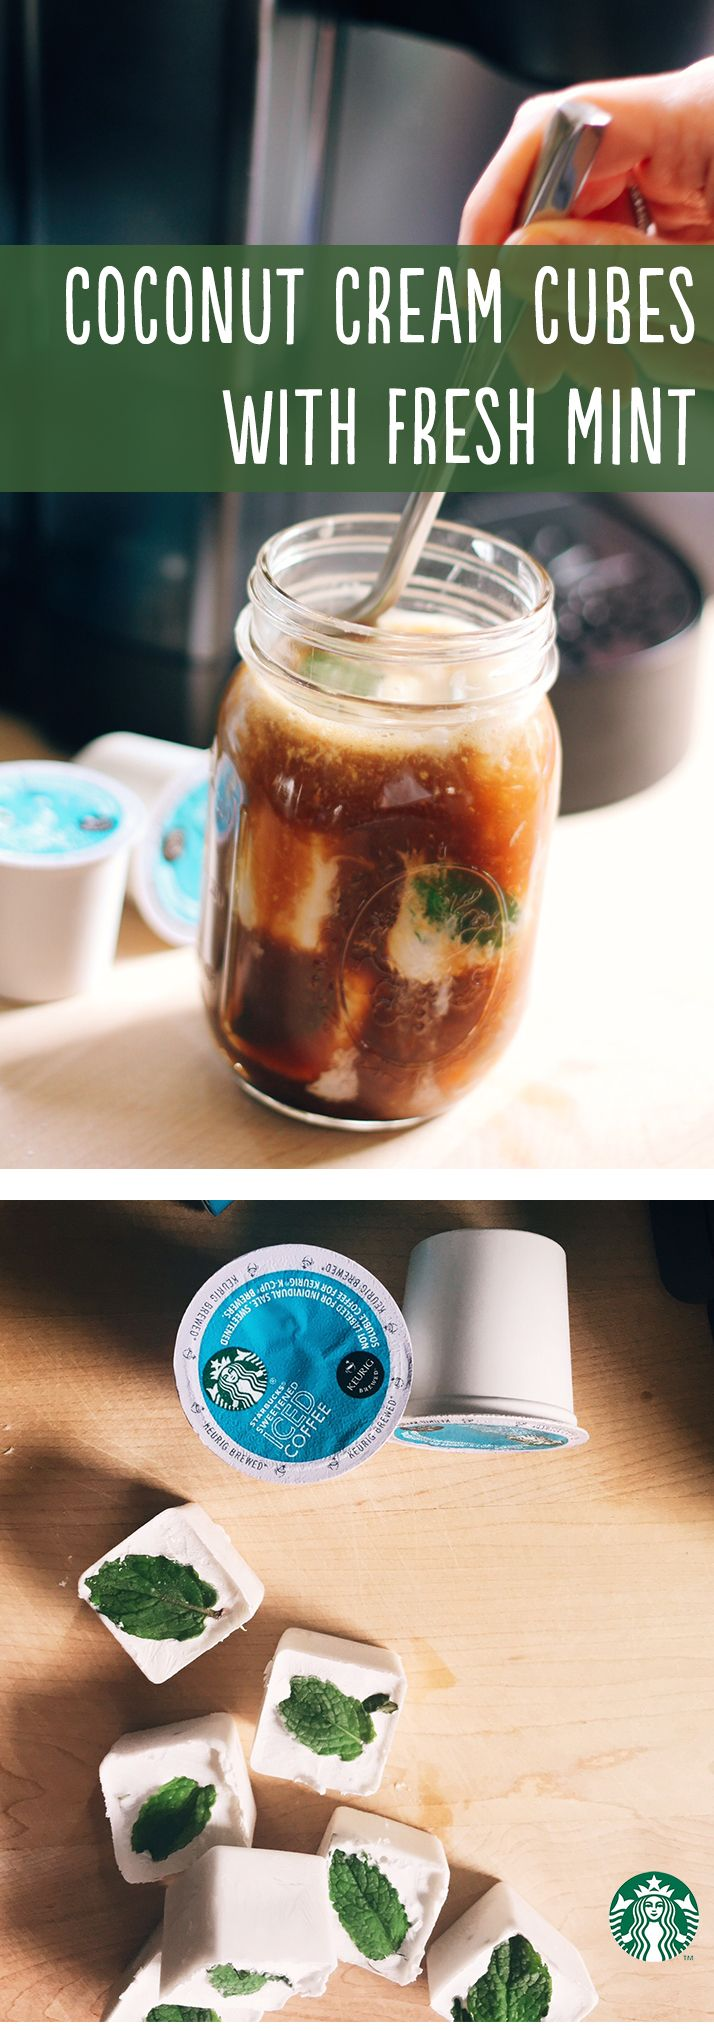 Mint Ice Cubes Recipe Pour 1 Can Coconut Milk Into Cube Trays Add Two Leaves To Each Place In The Freezer Brew One Iced Coffee K Cup